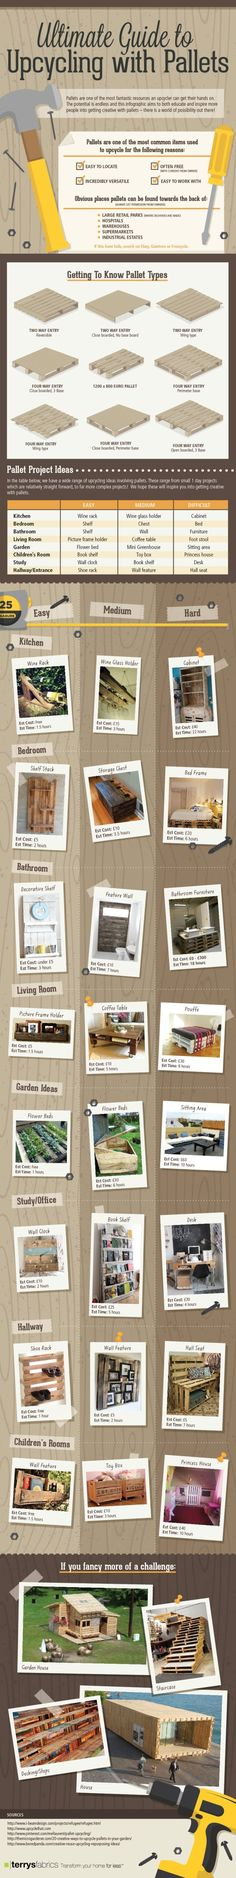 ultimate guide to upcycling with pallets.